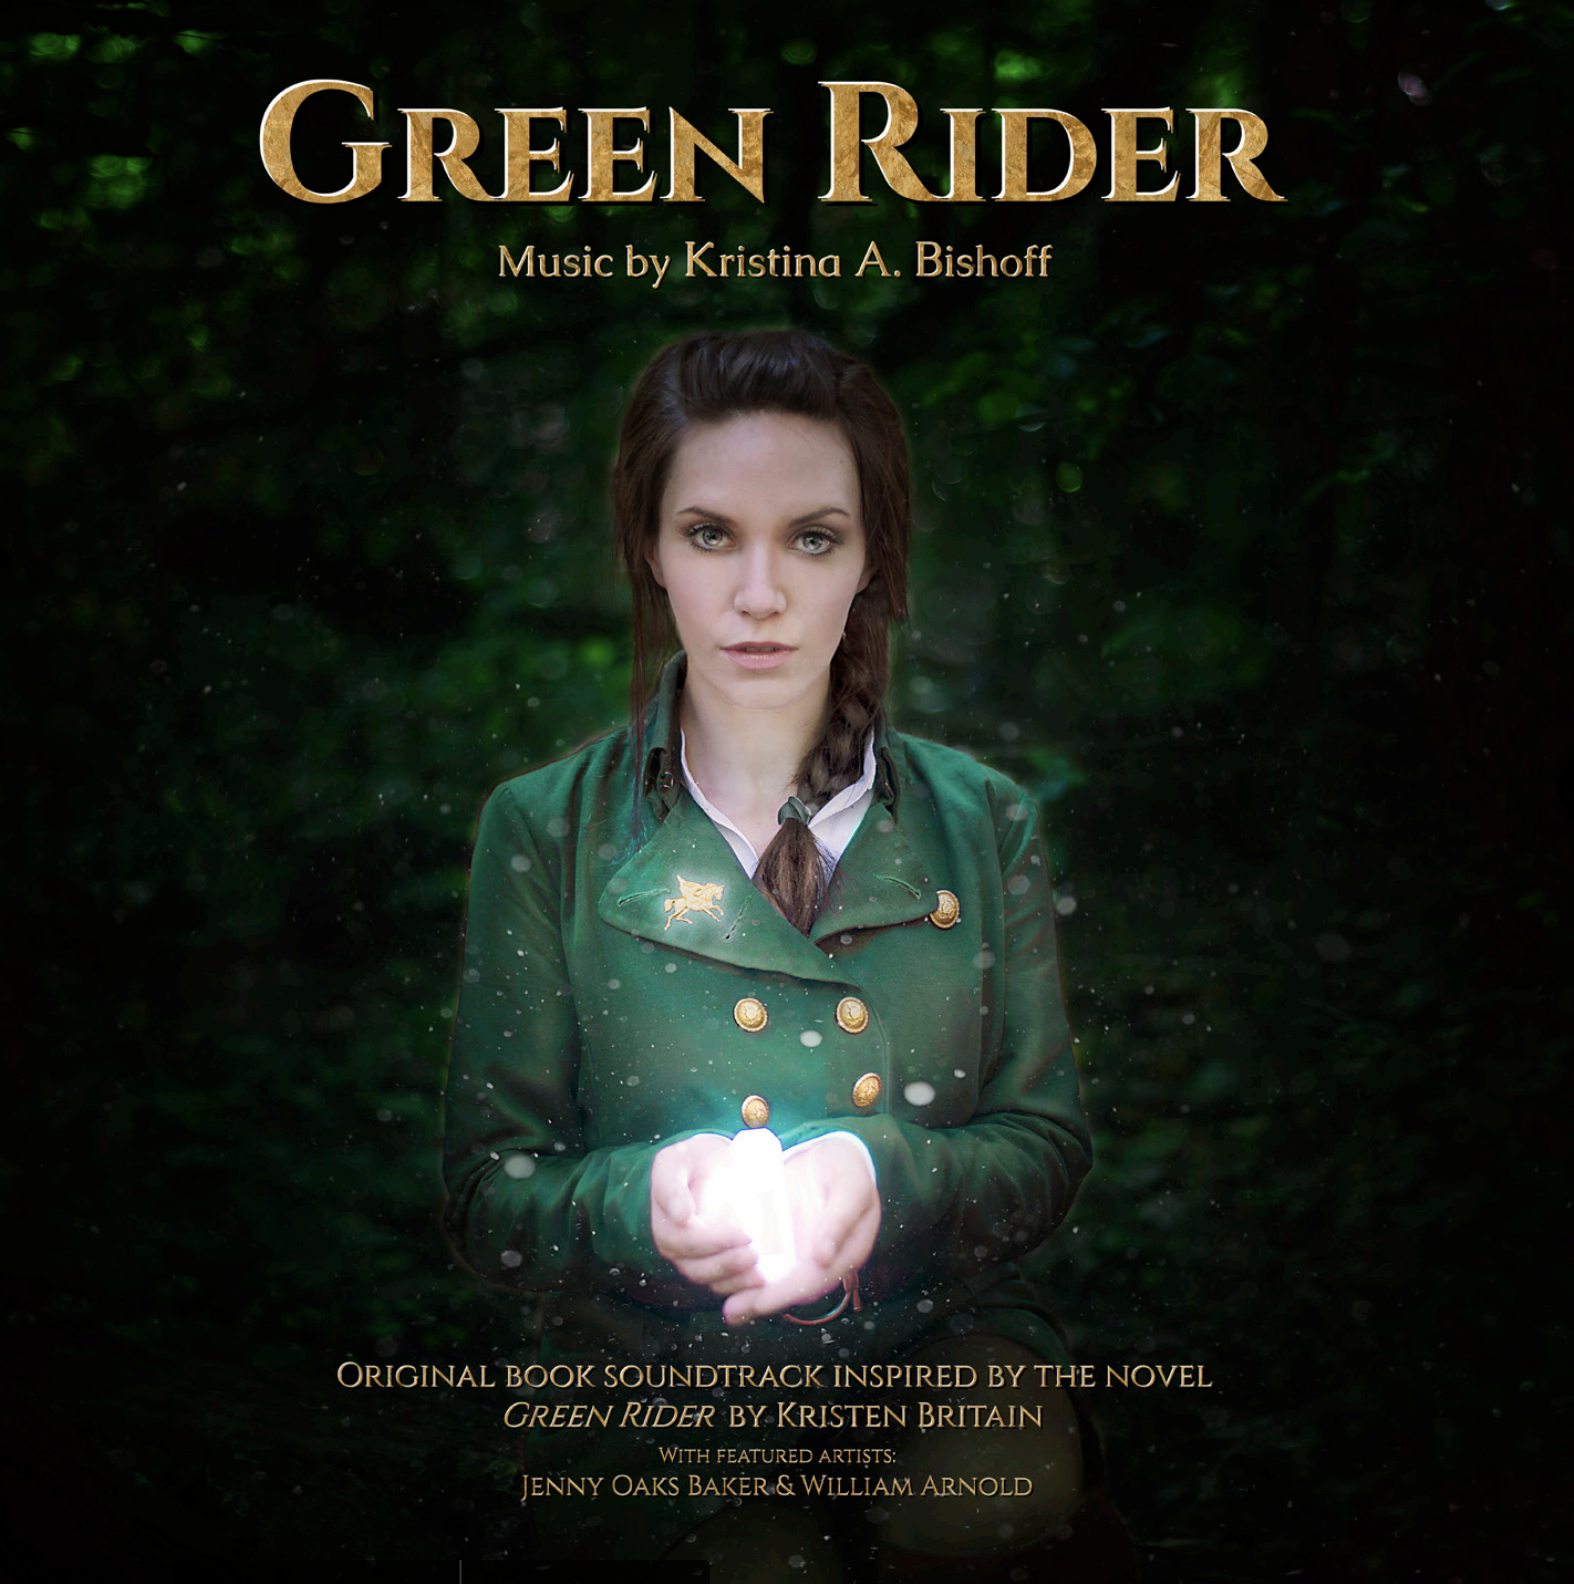 Green Rider | Green Rider Book Soundtrack